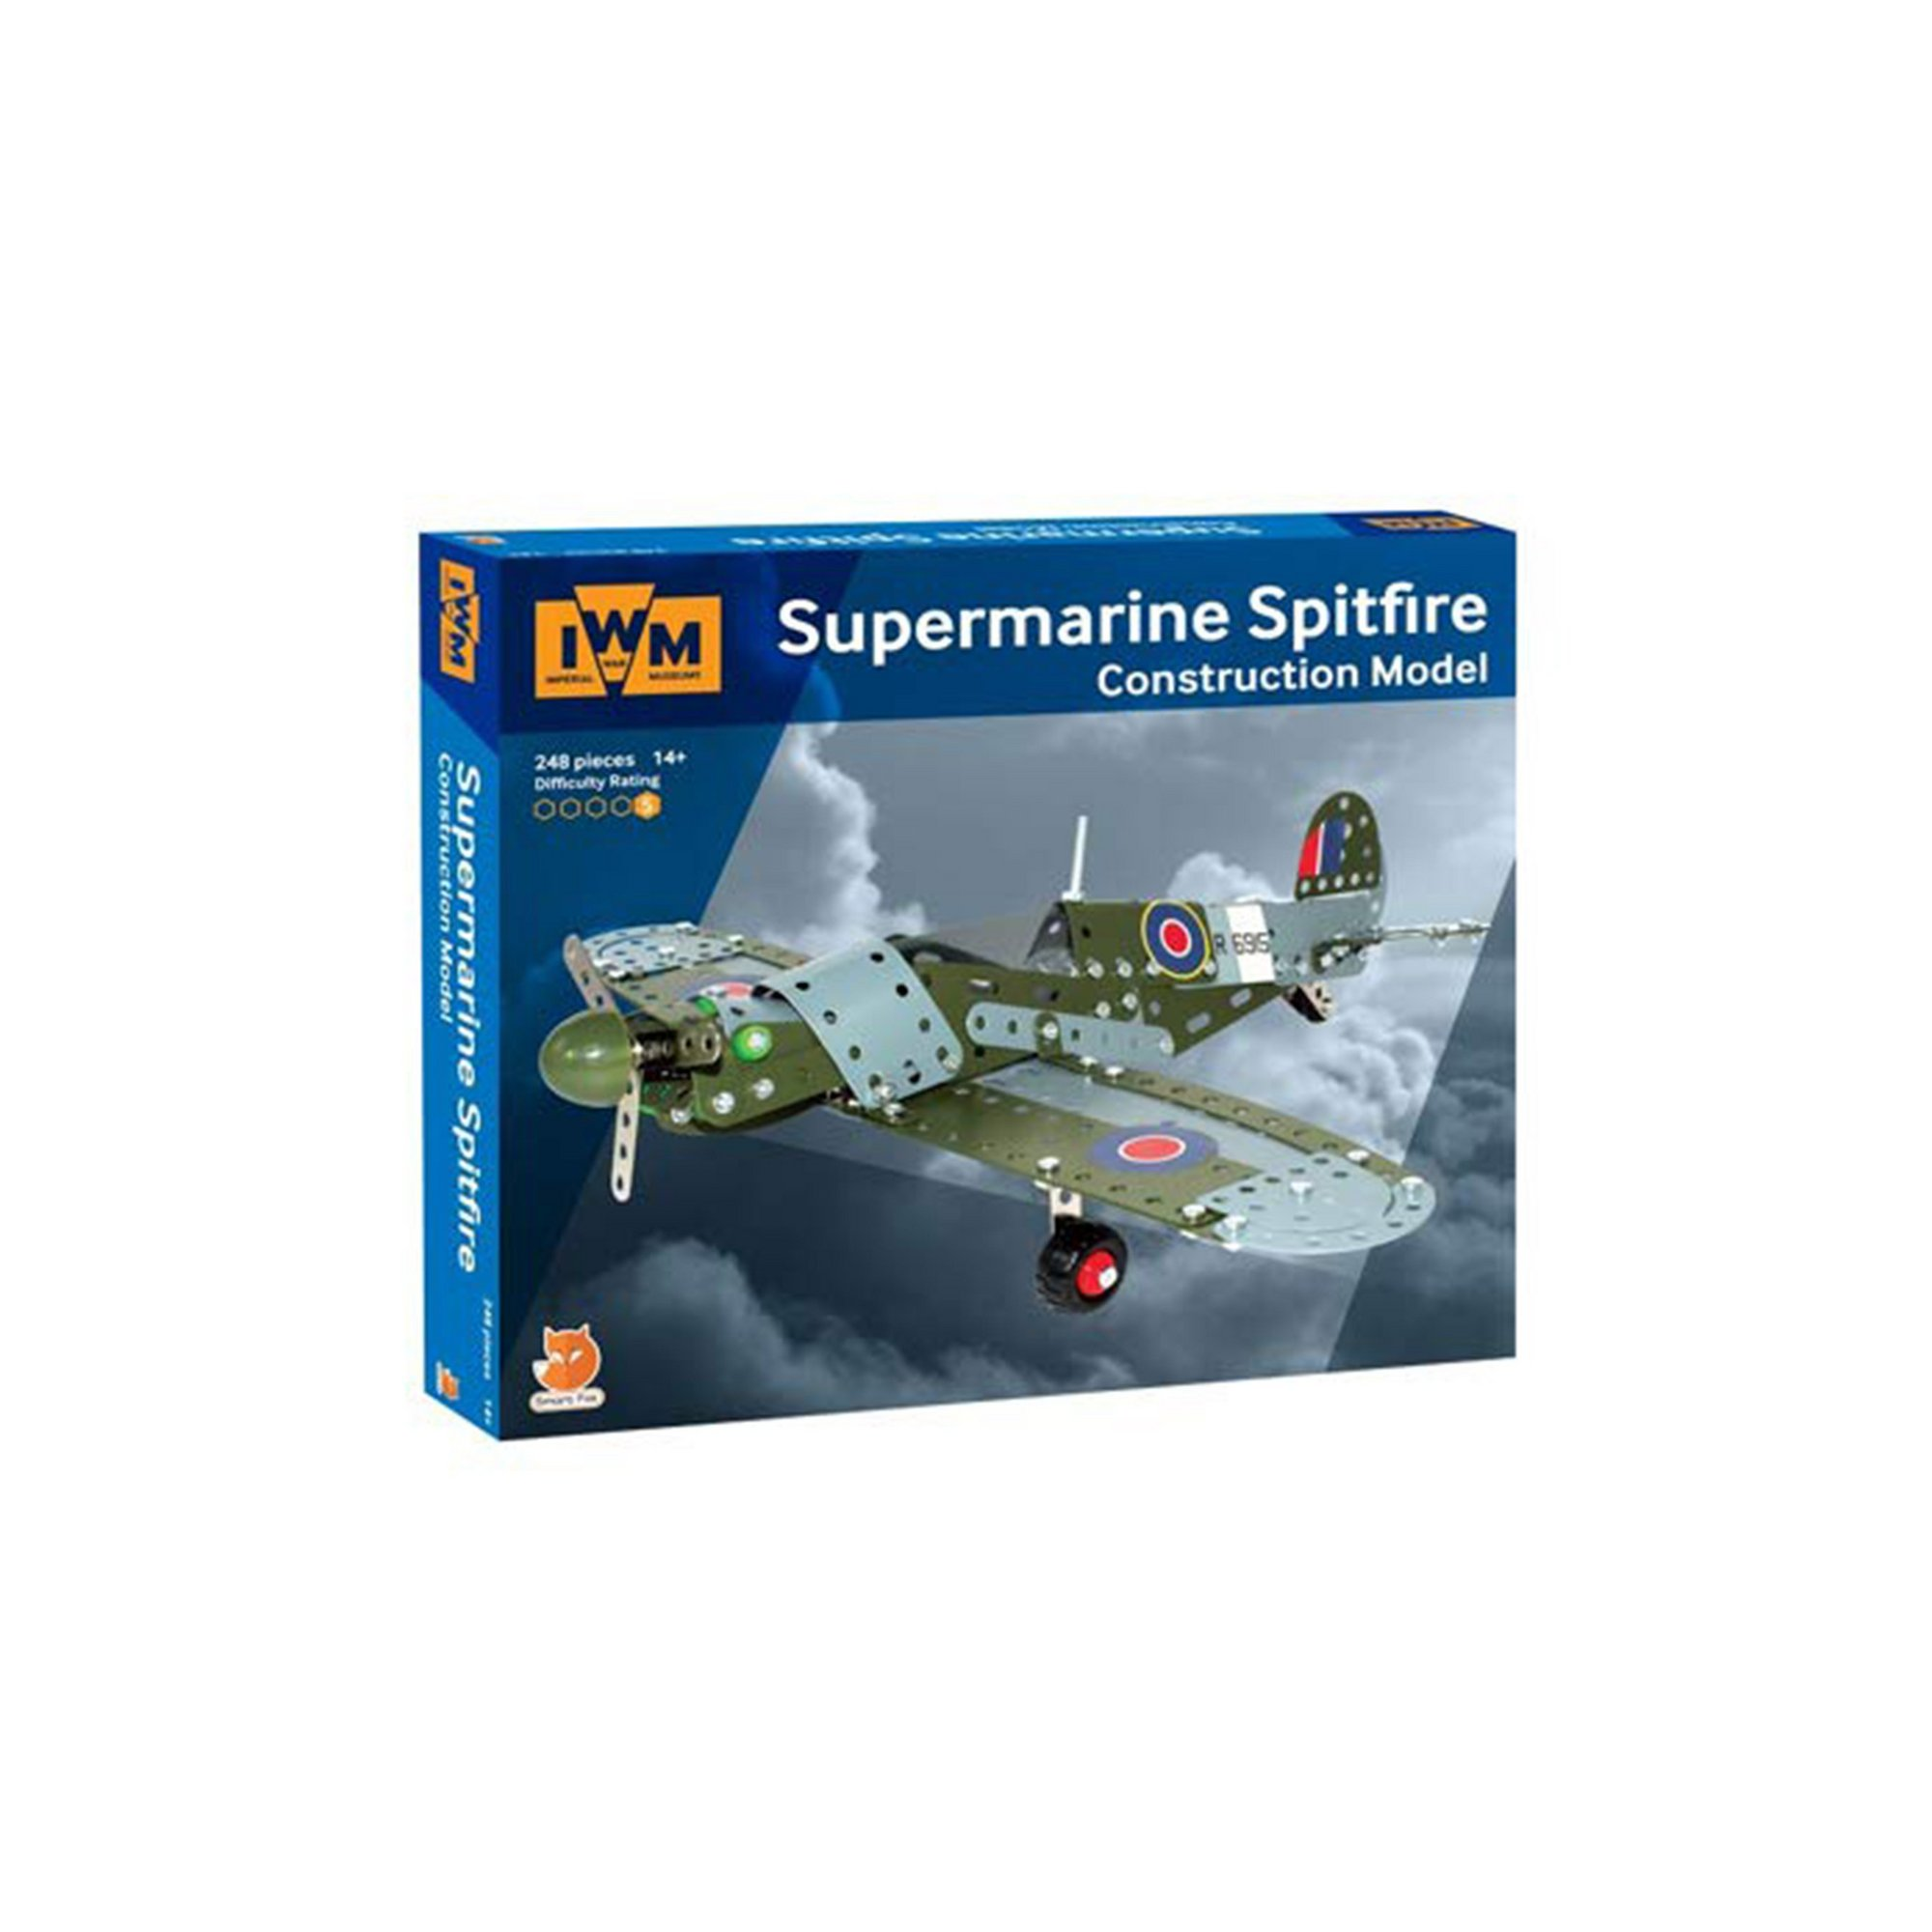 Image of Supermarine Spitfire Imperial War Museums Construction Set